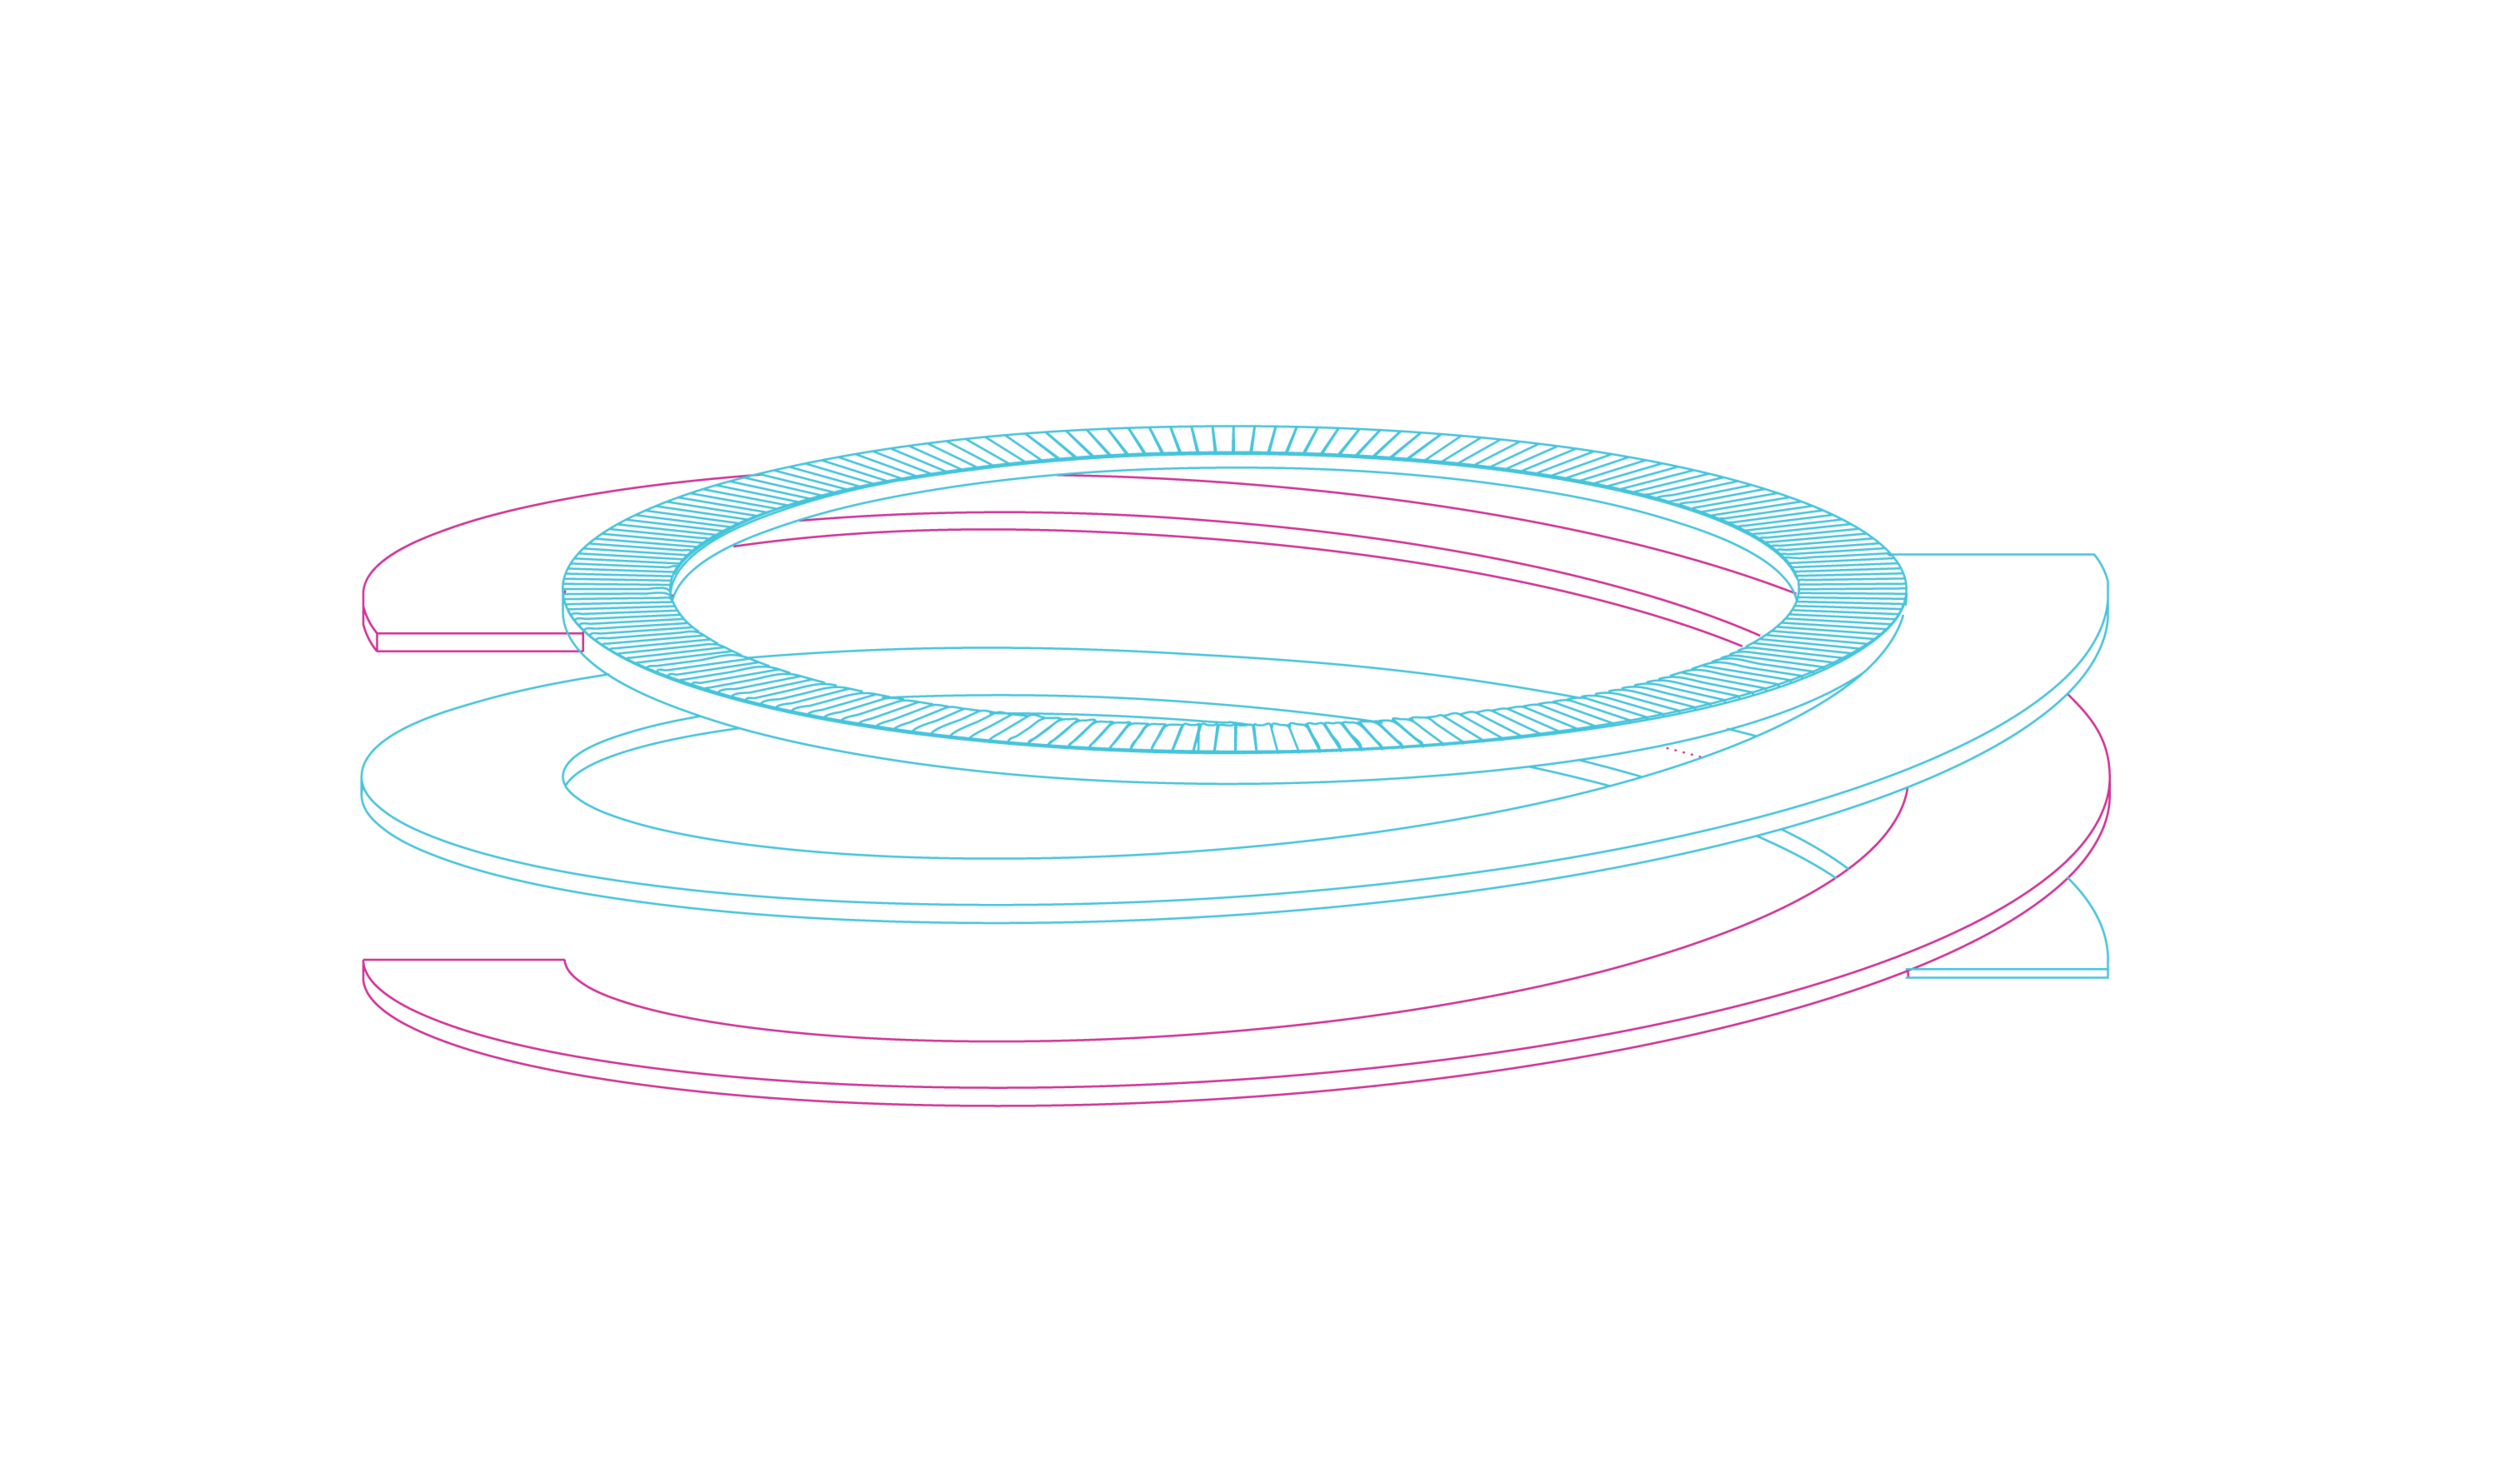 Animated Diagram-02.png